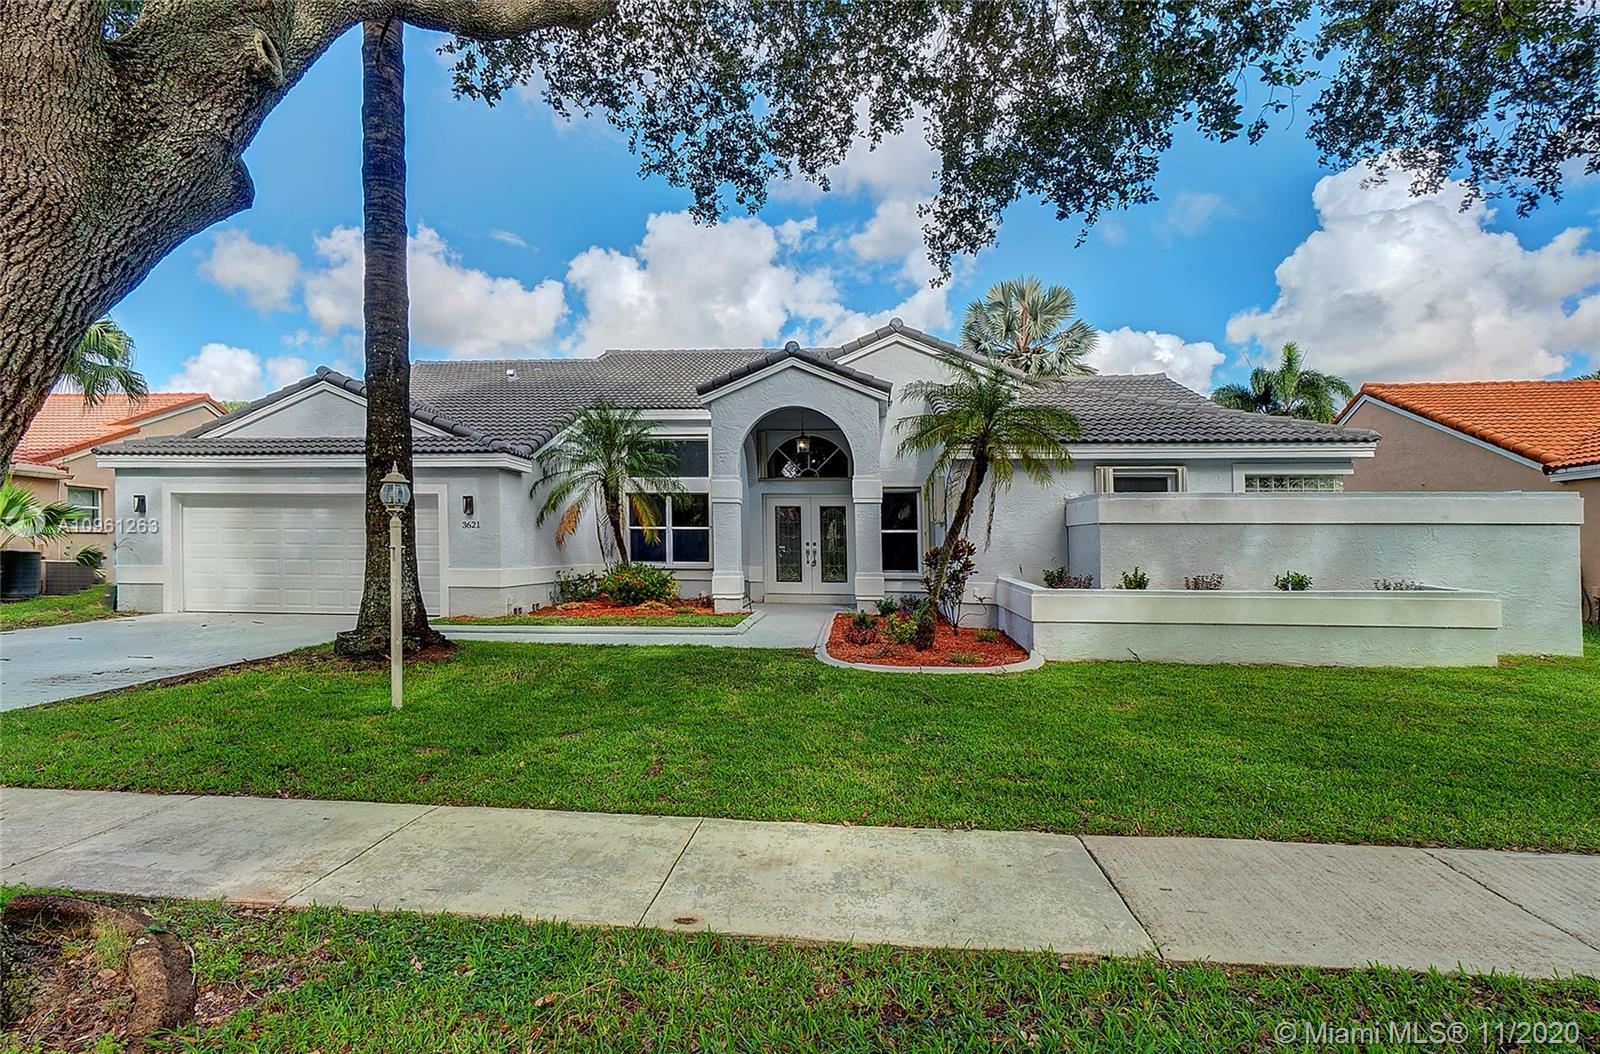 Completely remodeled one story, 4 bedroom, 2.5 bath, 2 car garage home in the prestigious neighborhood guard gated Embassy Lakes in Cooper City. Serviced by all top rated Cooper City schools. Community amenities include 3 guard gated entrances, heated olympic size pool, 6 lighted tennis courts, fitness center, basketball and volleyball and handball courts, clubhouse and play grounds for the kids.